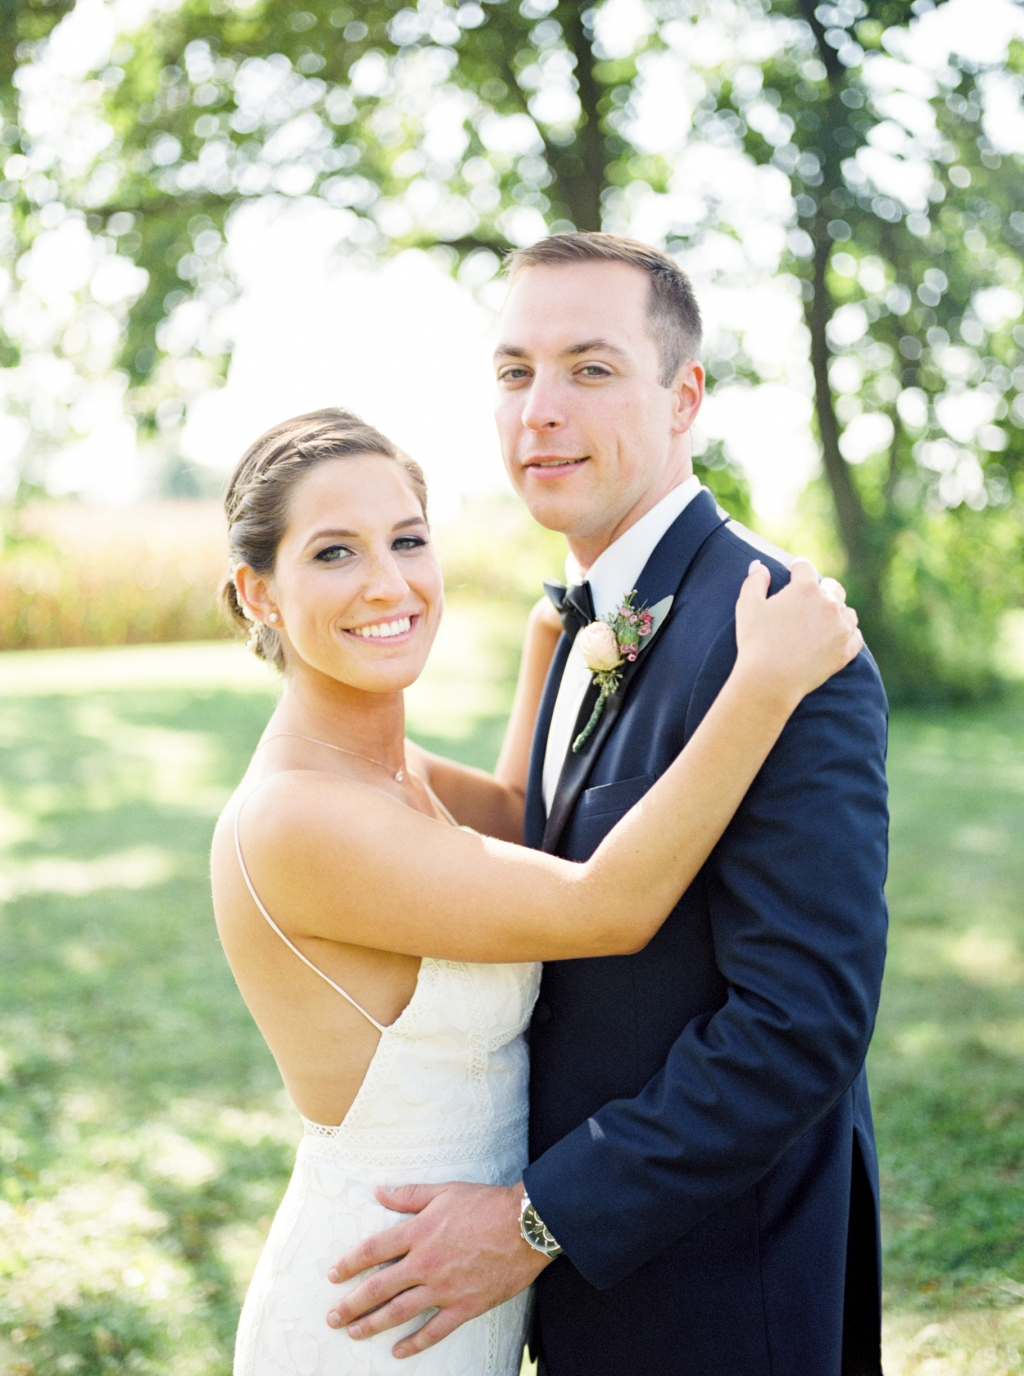 haley-richter-photography-buena-vista-confrence-center-wedding-summer-207